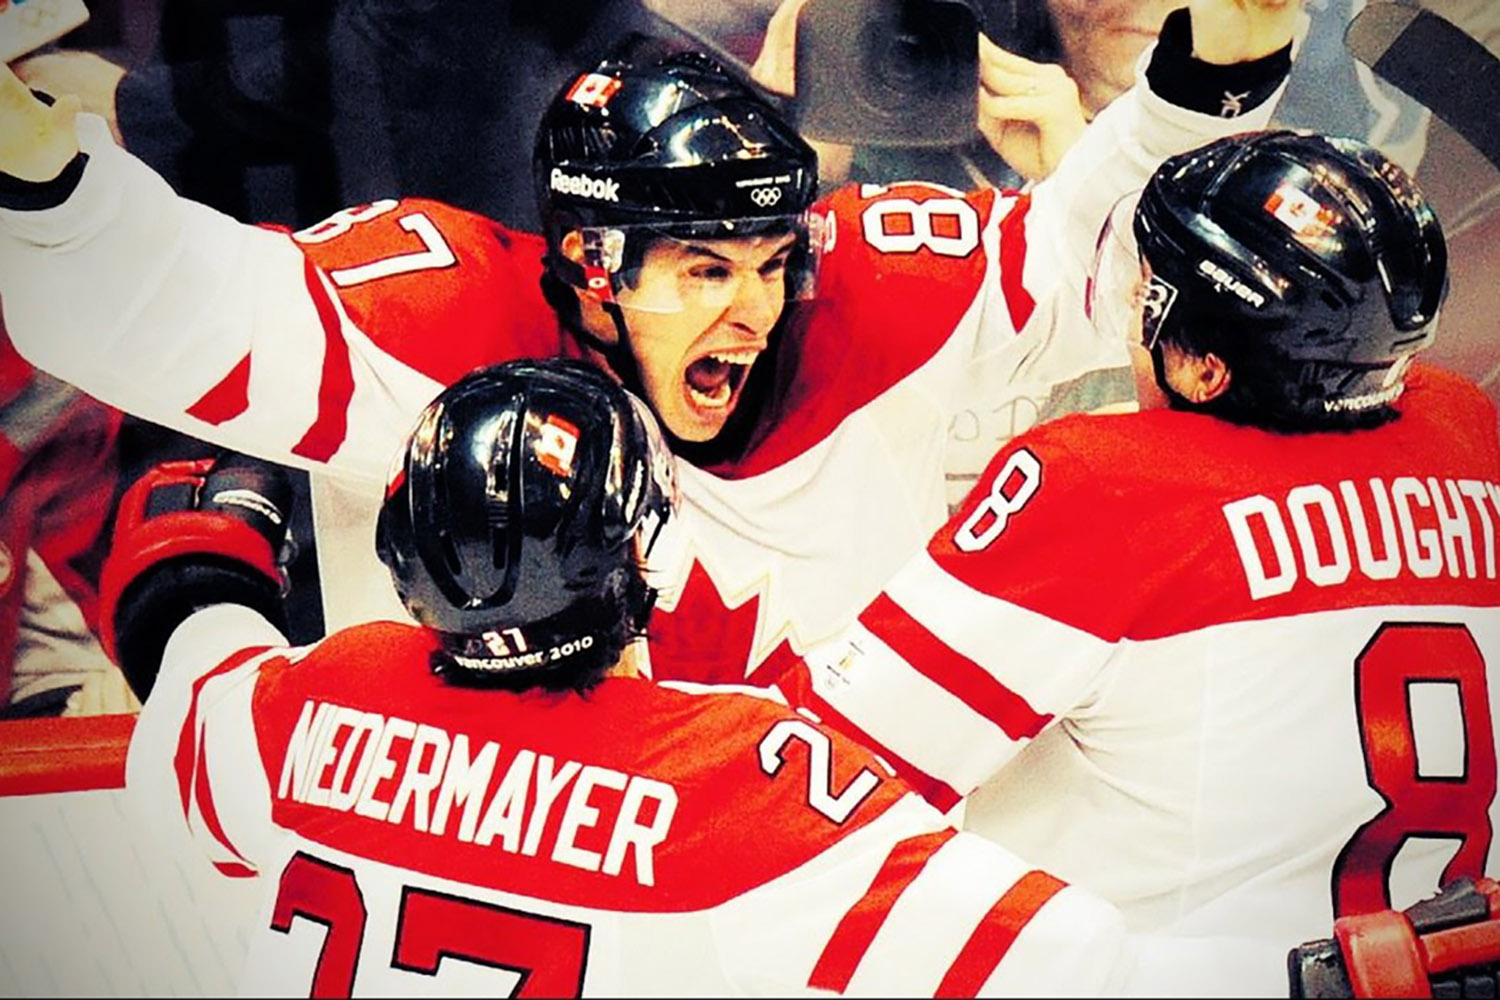 greatest moments in canadian sports history